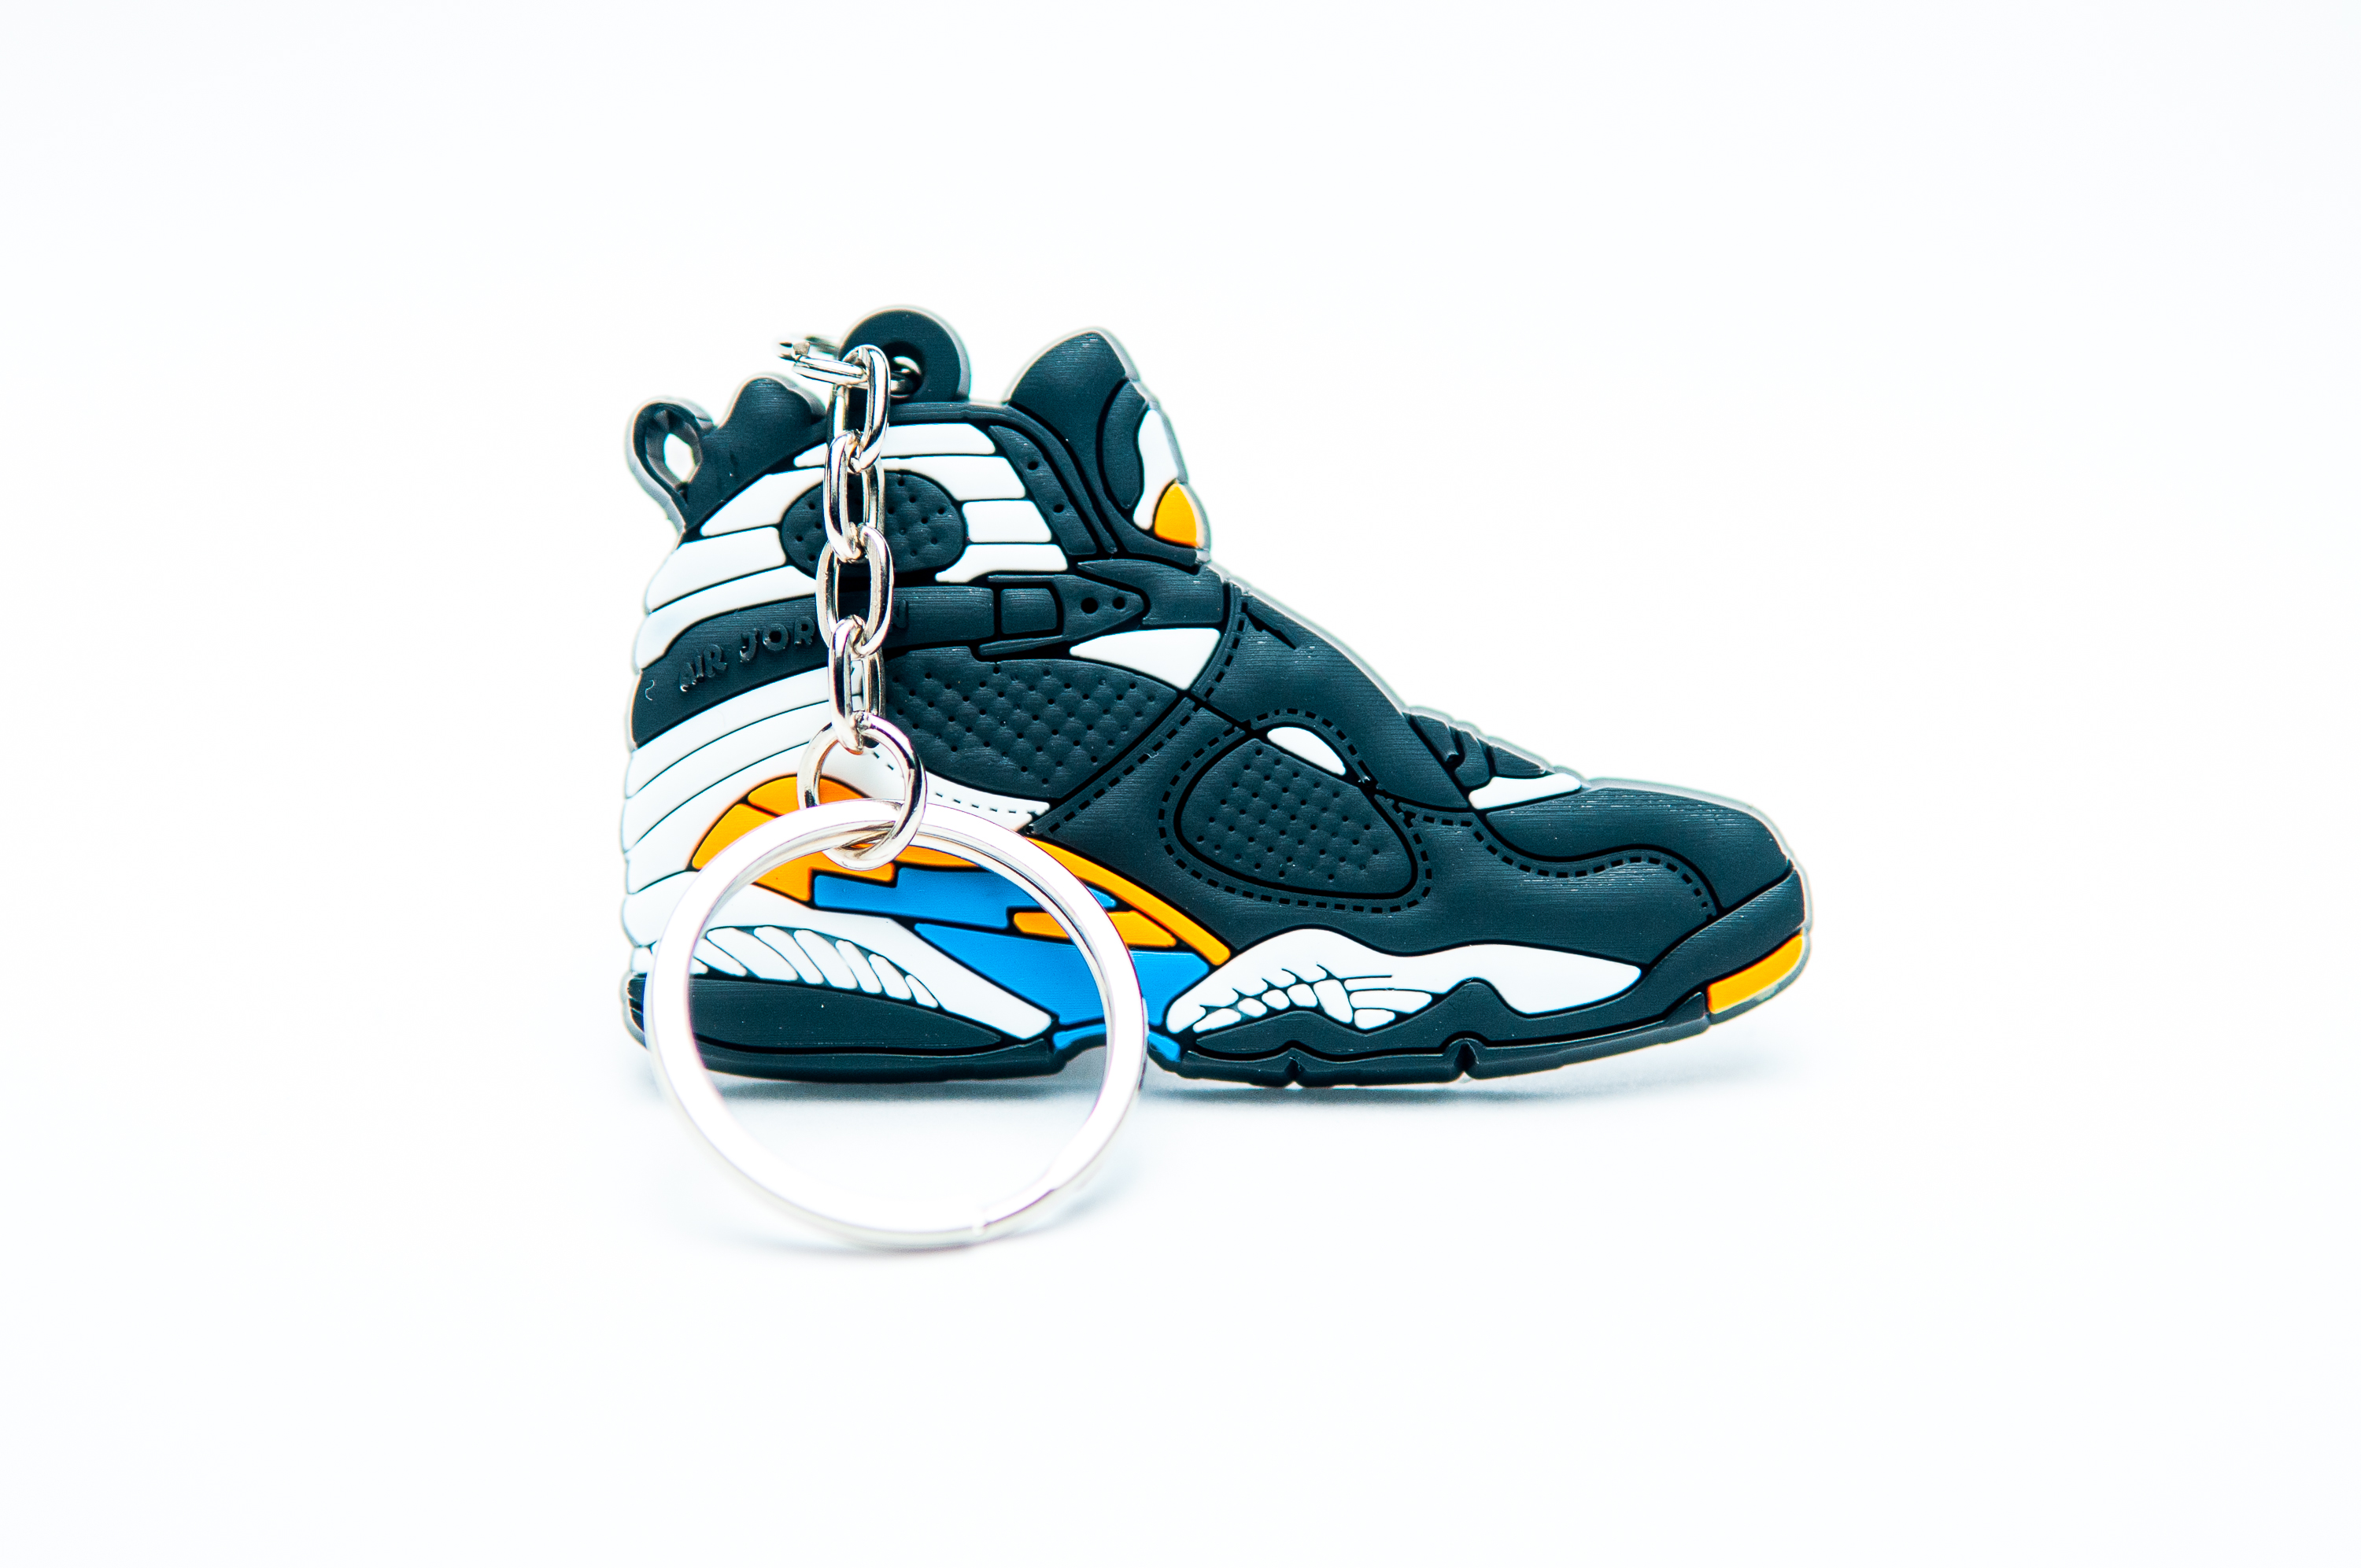 50d16ad8af6 Nike Air Jordan 8 Retro Black Blue White - Kool keyringsKool keyrings